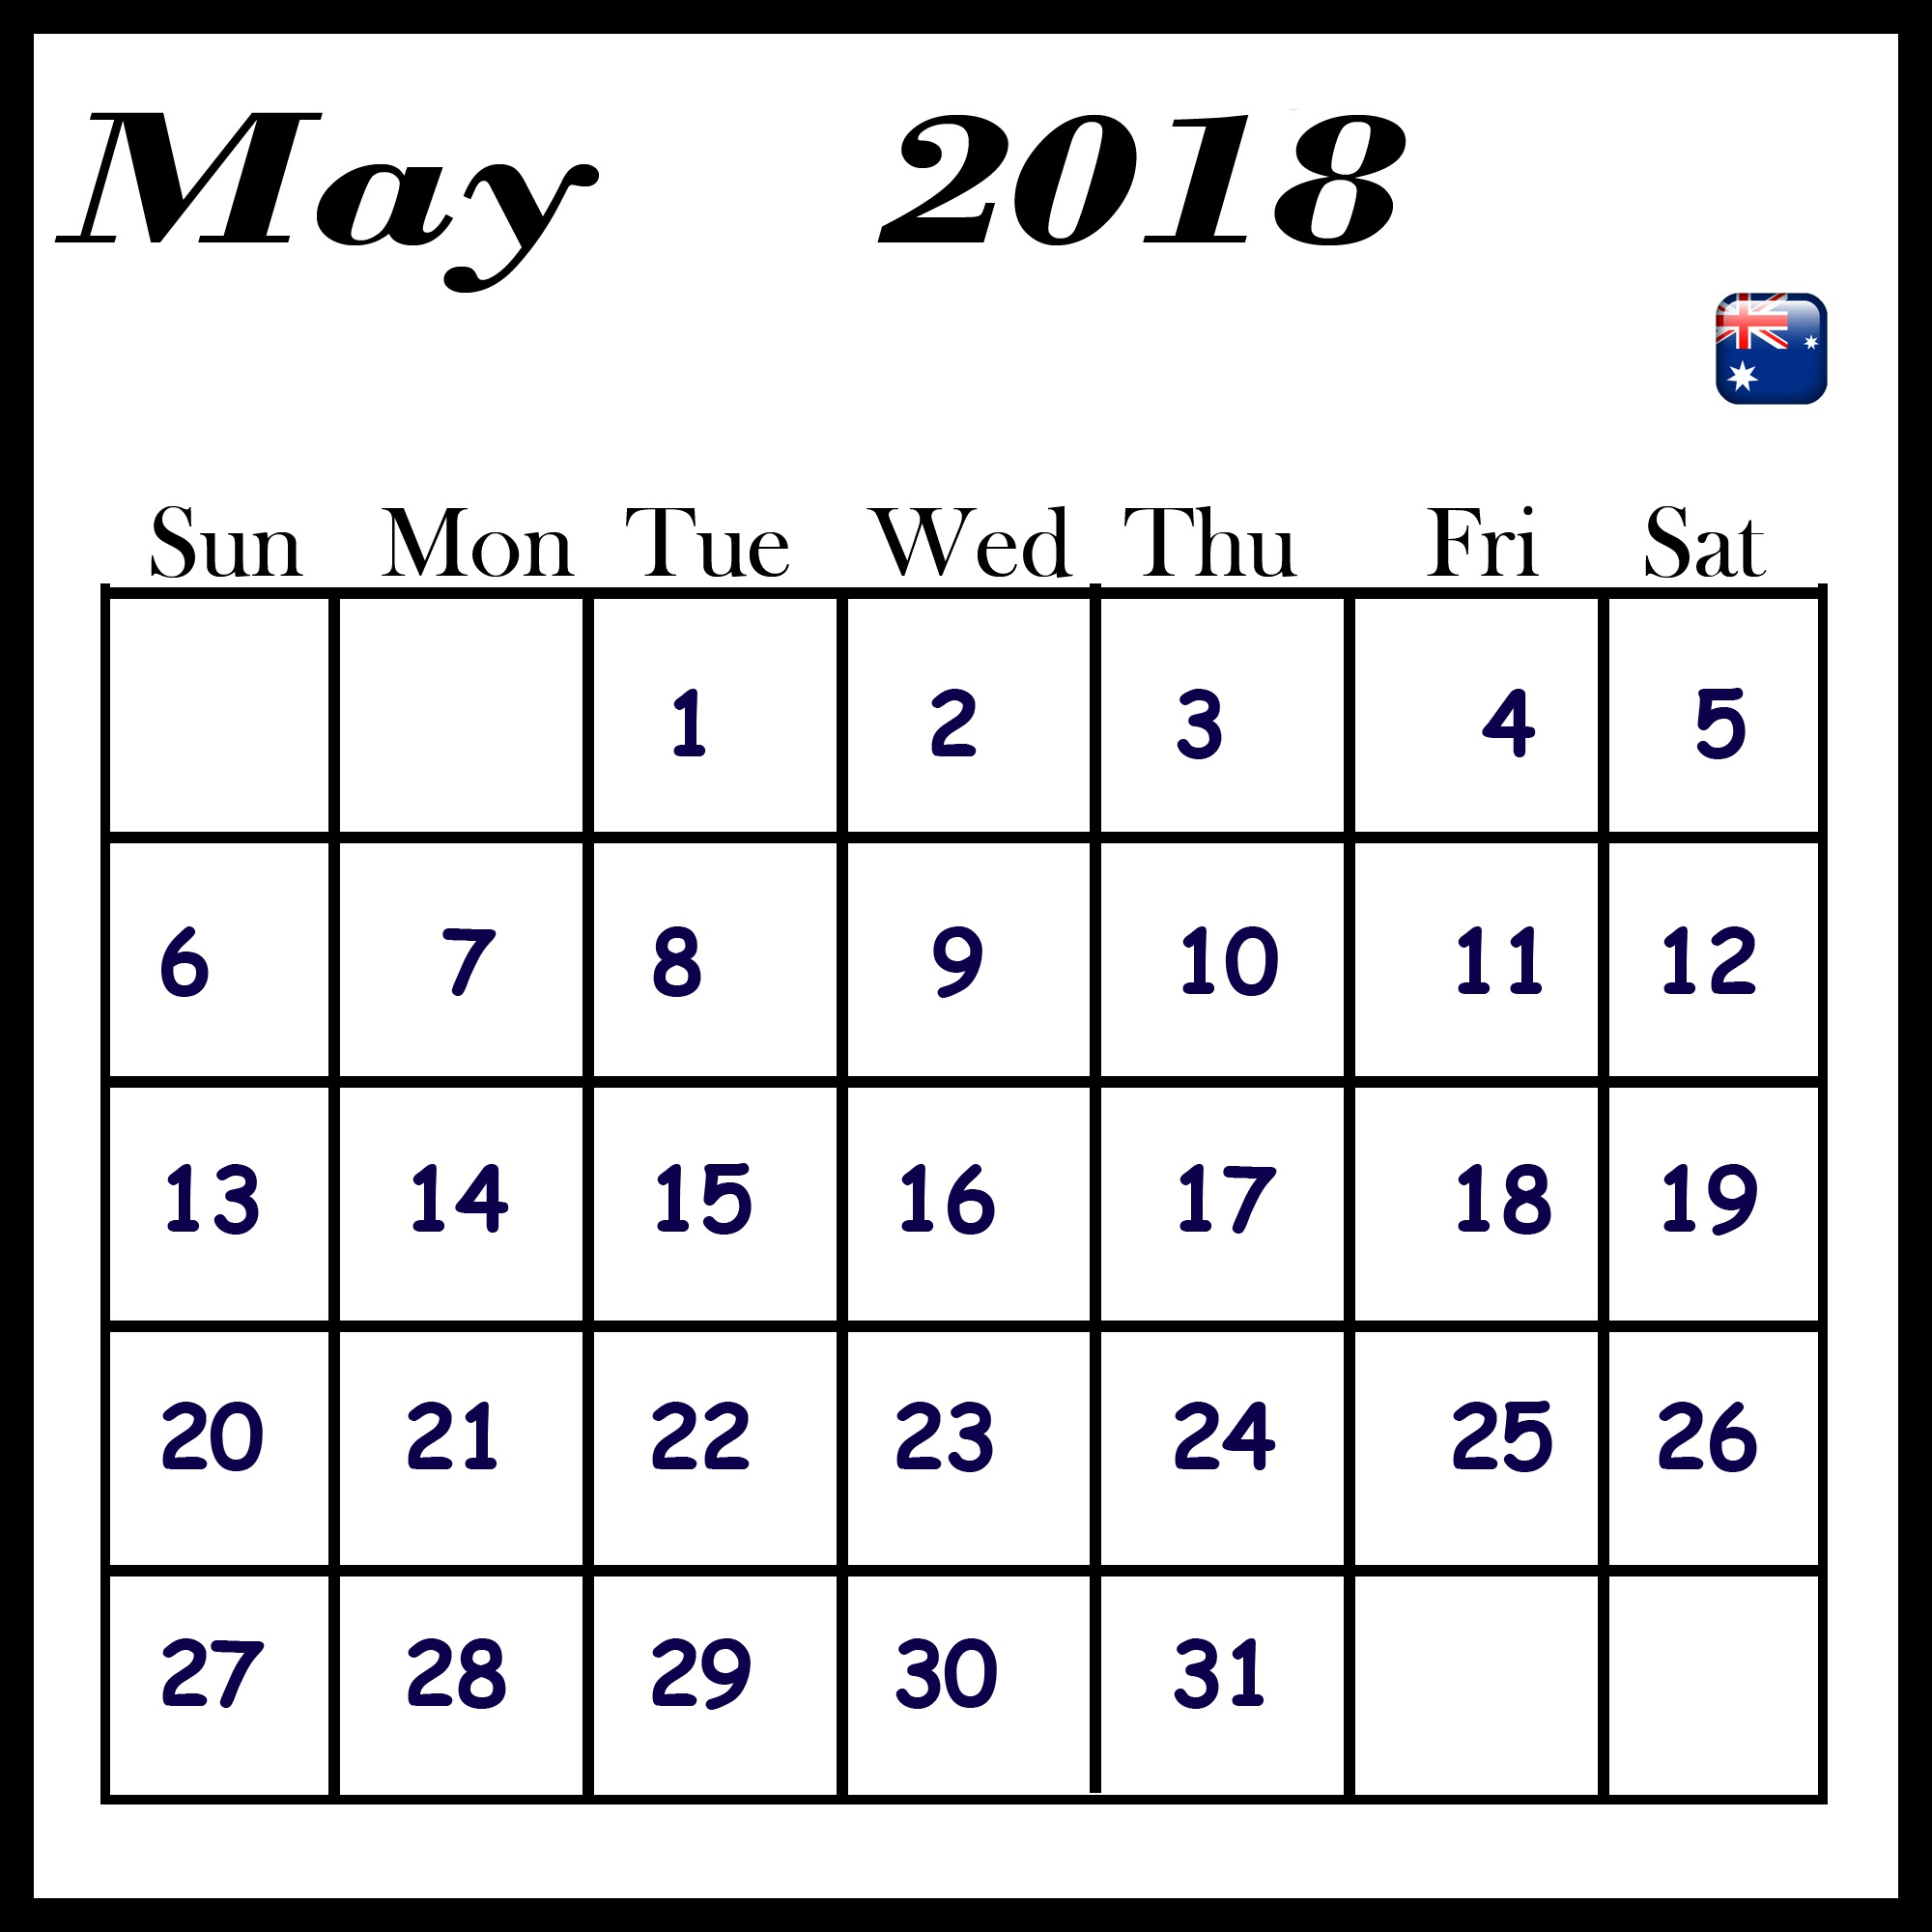 May 2018 Calendar With Australia Bank Holidays